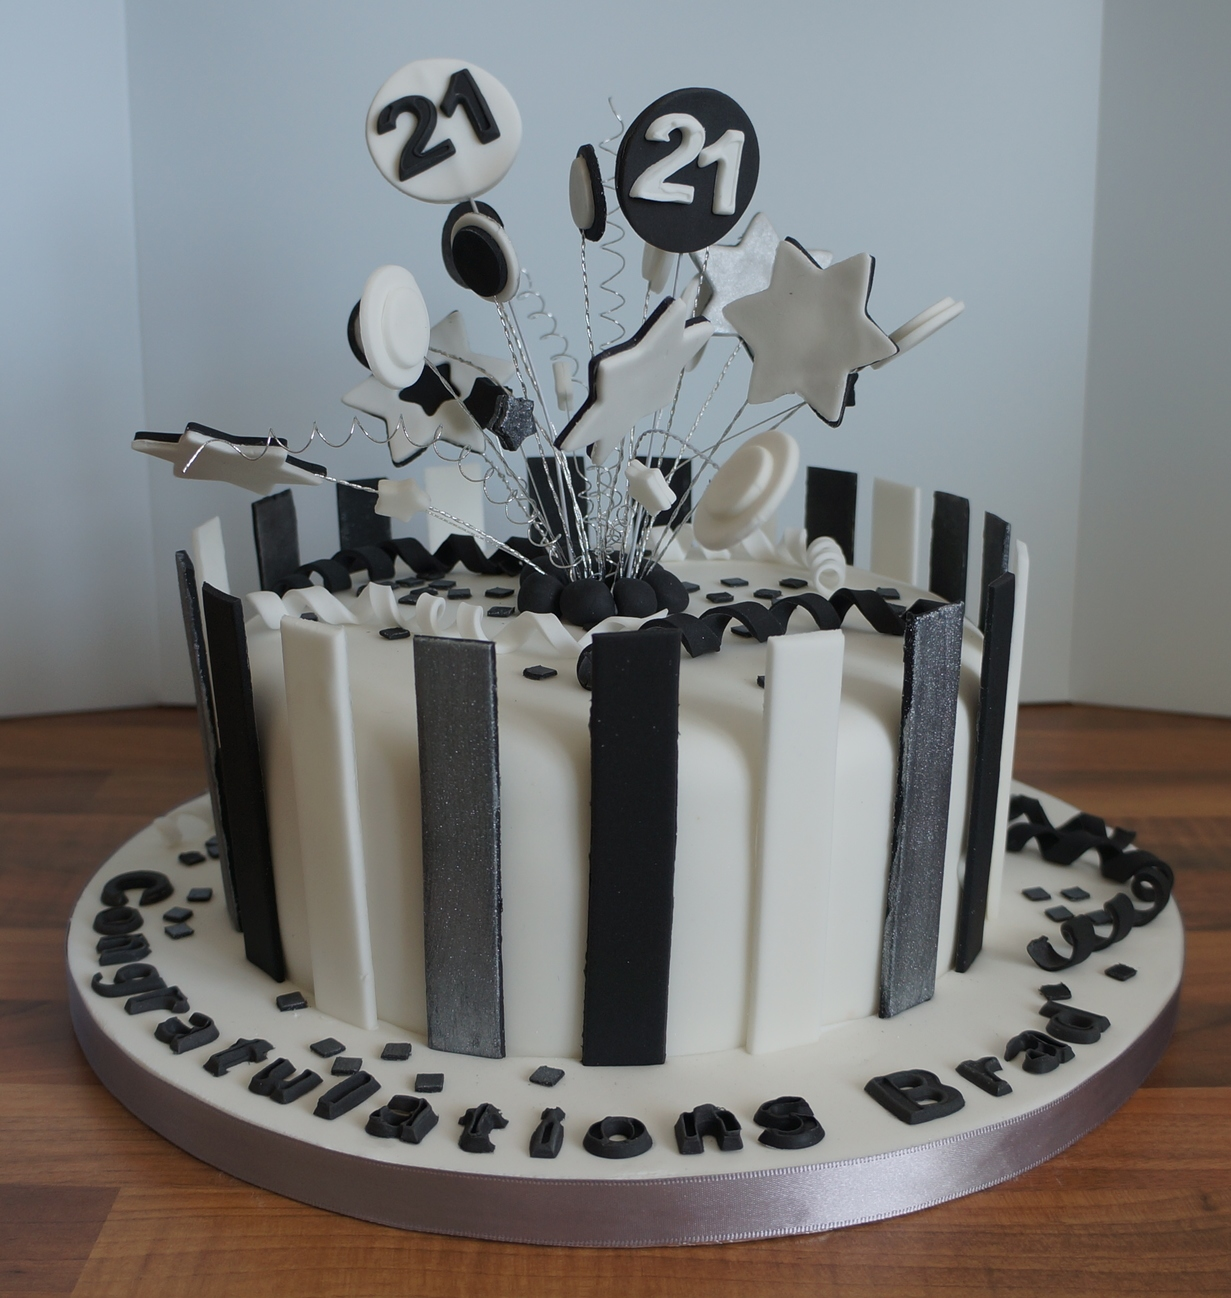 Black white silver stripe 21st birthday cake coppice for 21st cake decoration ideas